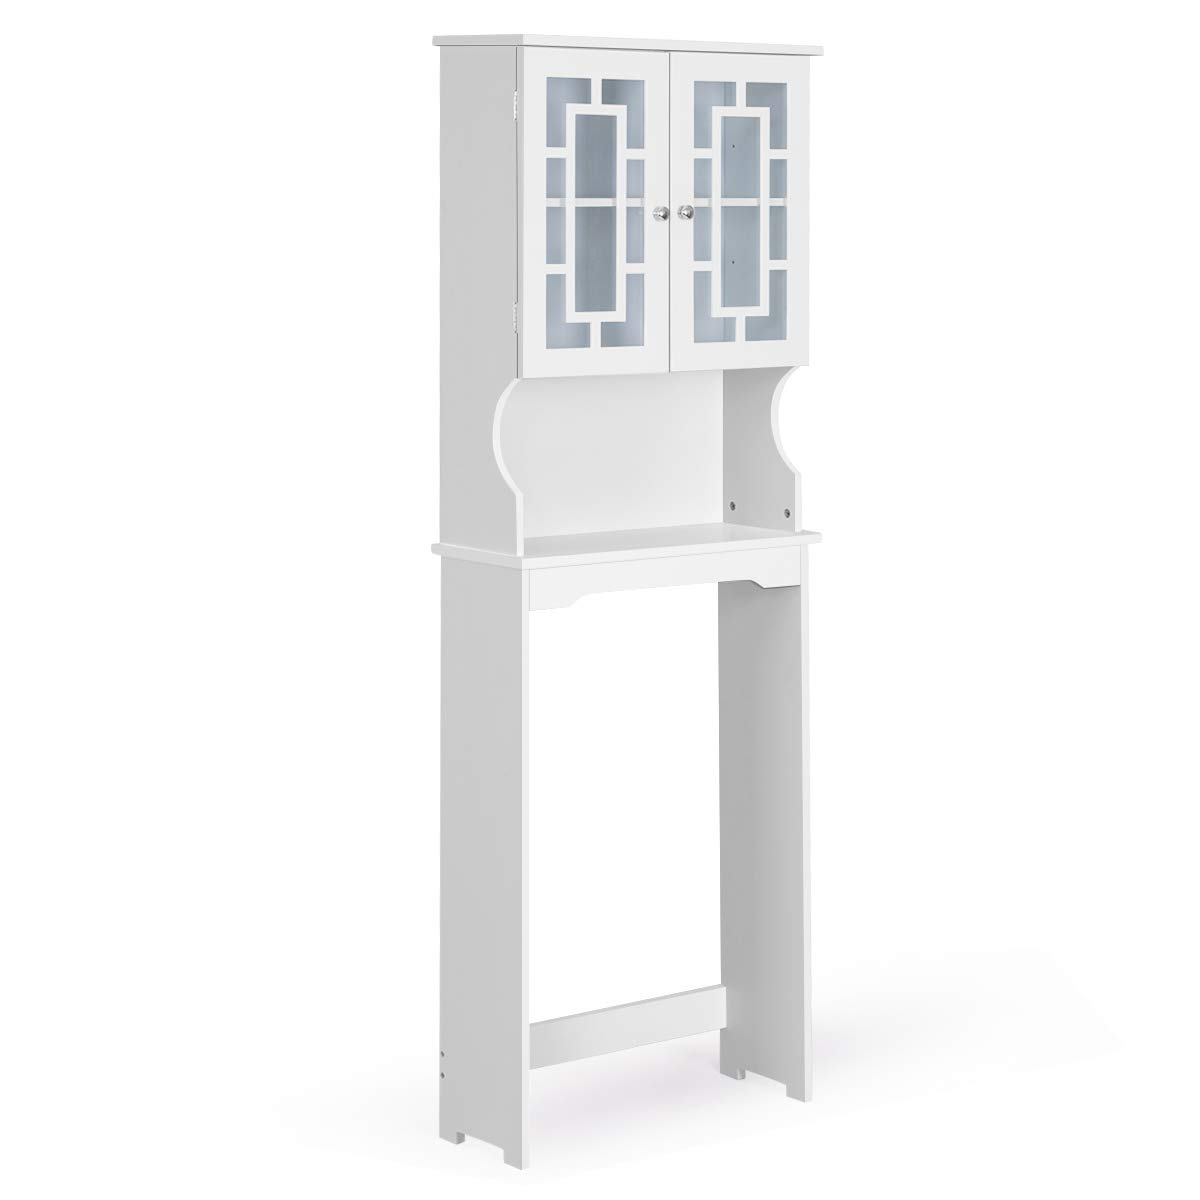 Giantex Over-The-Toilet Bathroom Storage Space Saver W/Shelf and 2-Door Collect Cabinet (White) by Giantex